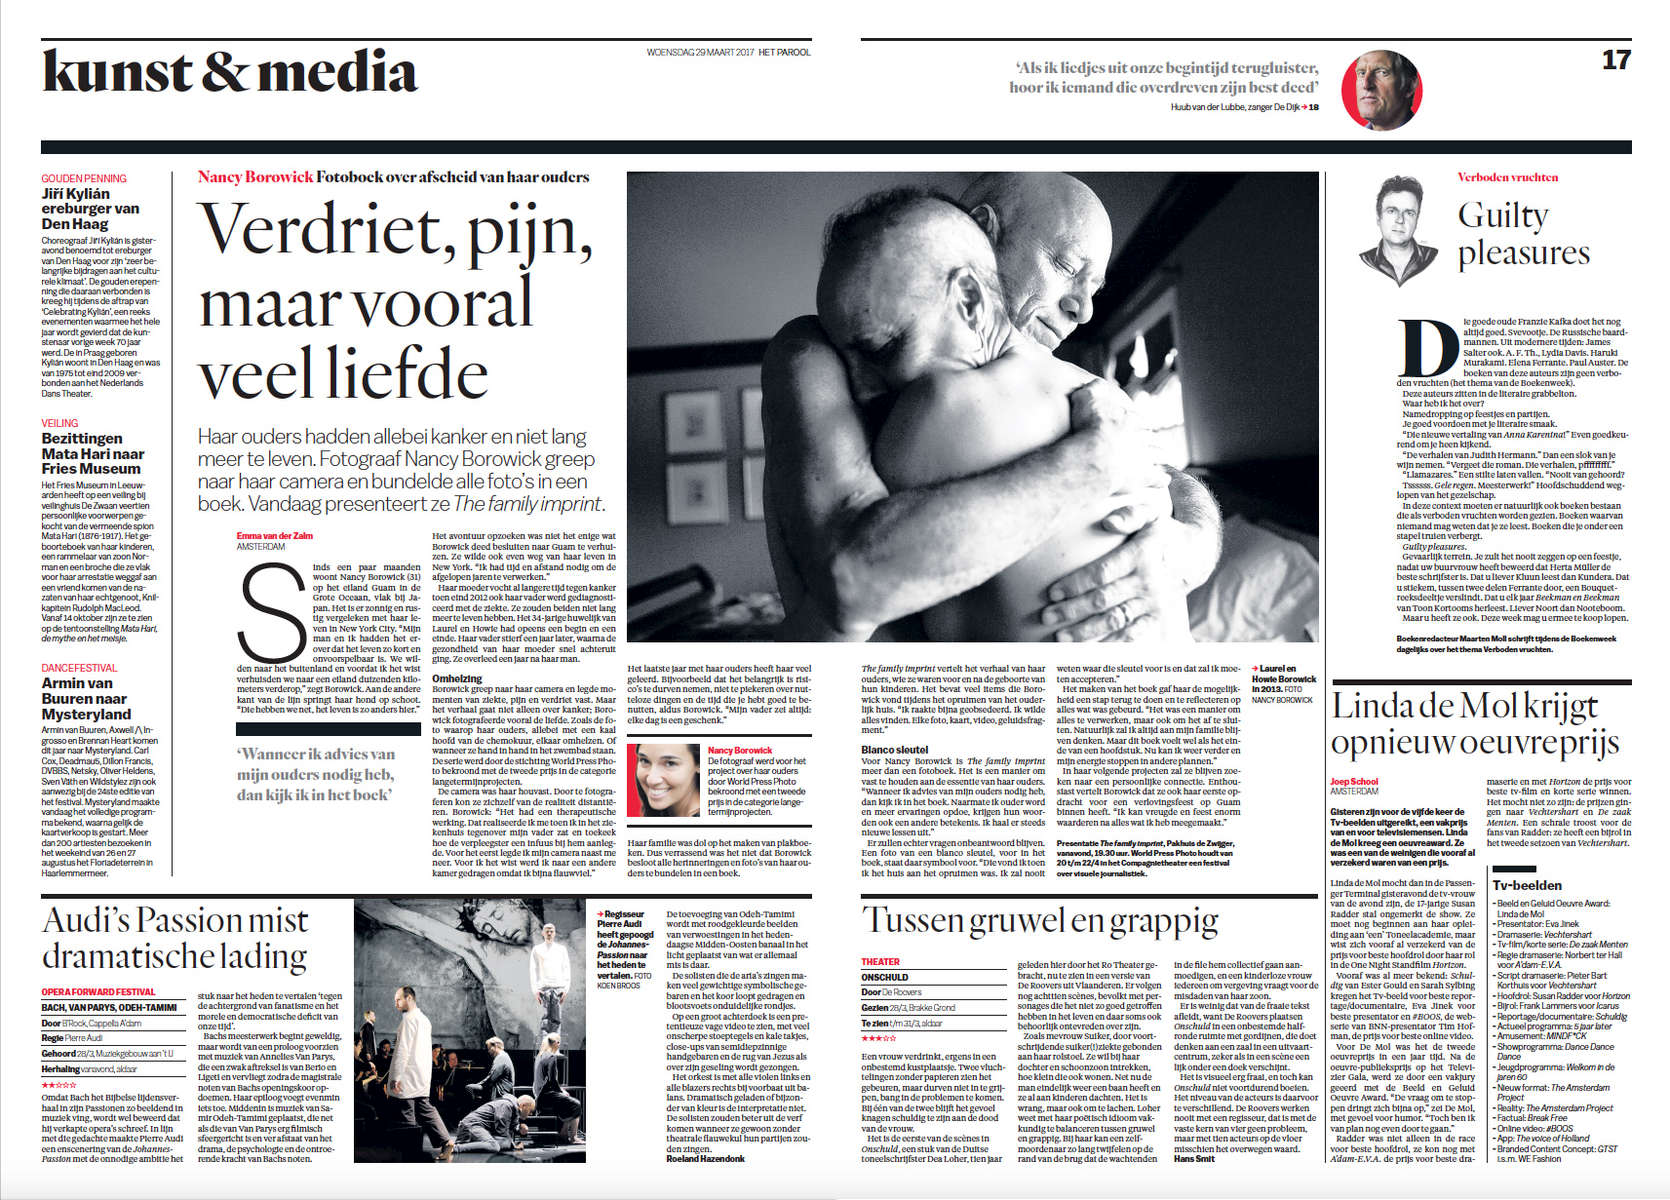 When I wasn't samplling the regions many delicious cheeses, I was connecting with Dutch newspapers, like this one, for interviews about The Family Imprint.